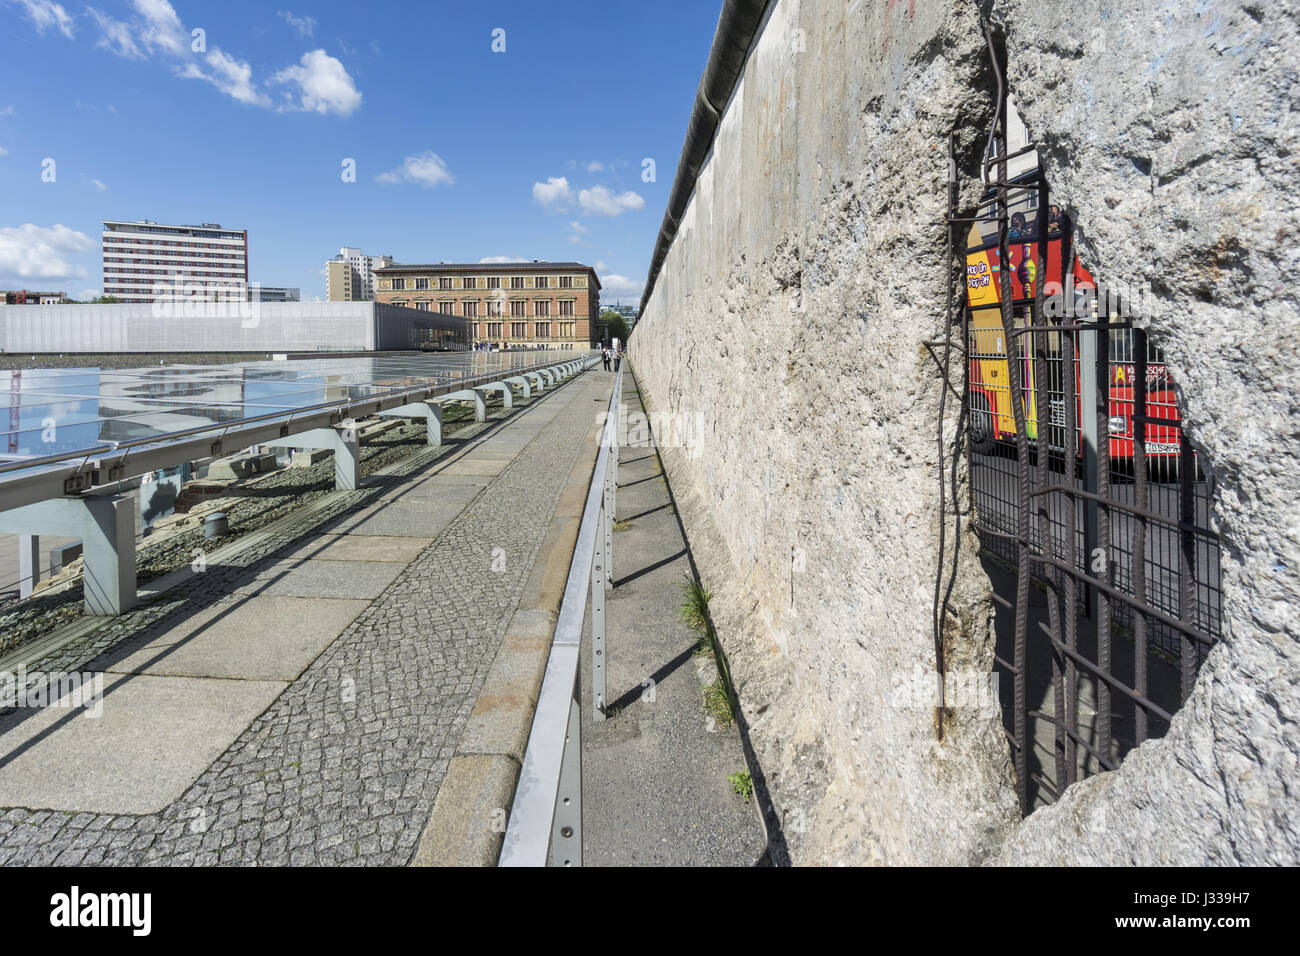 Topography of Terror and Berlin Wall, Documentation Center of Nazi Terror, Berlin Wall, Berlin, Germany - Stock Image